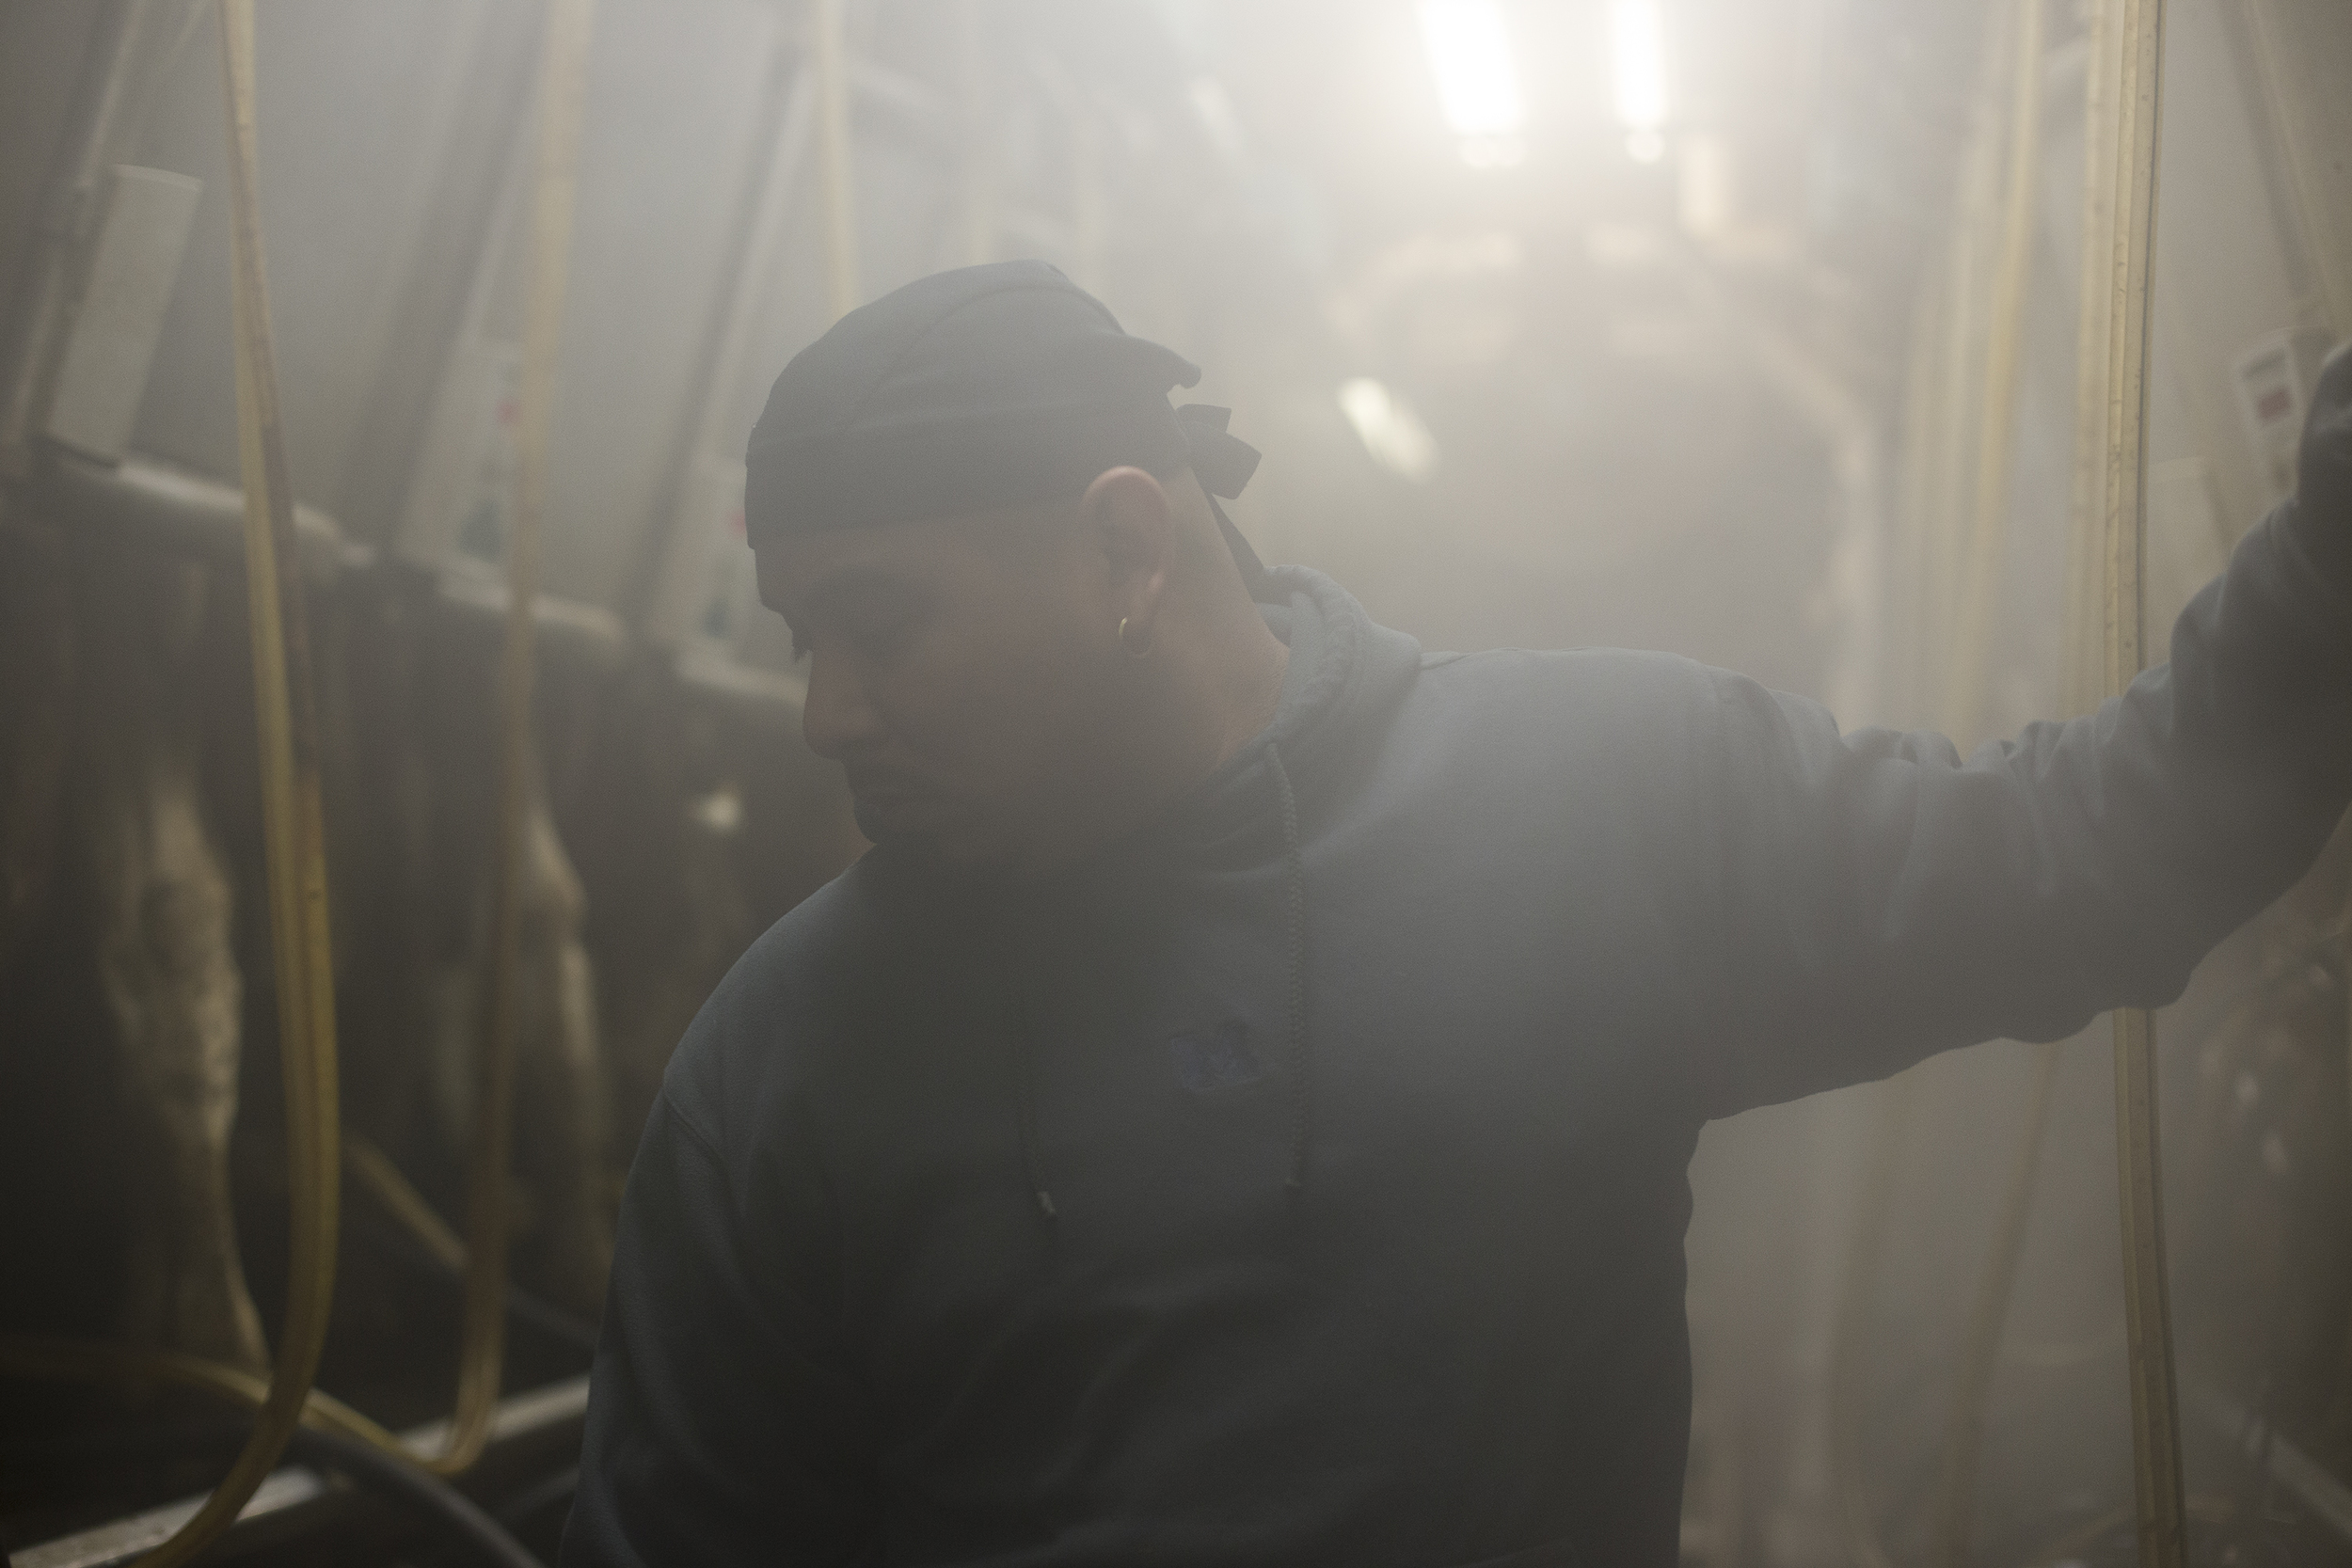 """Billamar, 34, pushes to release a milker from a cow in the parlor at 4:30 a.m. """"I wake up at two every morning, drink some coffee and come to work. It isn't too hard because I go to bed at seven or eight every night. Working here on the farm is okay, it is work. I came to Michigan because my sister was working here with her boyfriend. Maybe next year I will move on again and find a different job,"""" said Billamar at the end of his milking shift."""